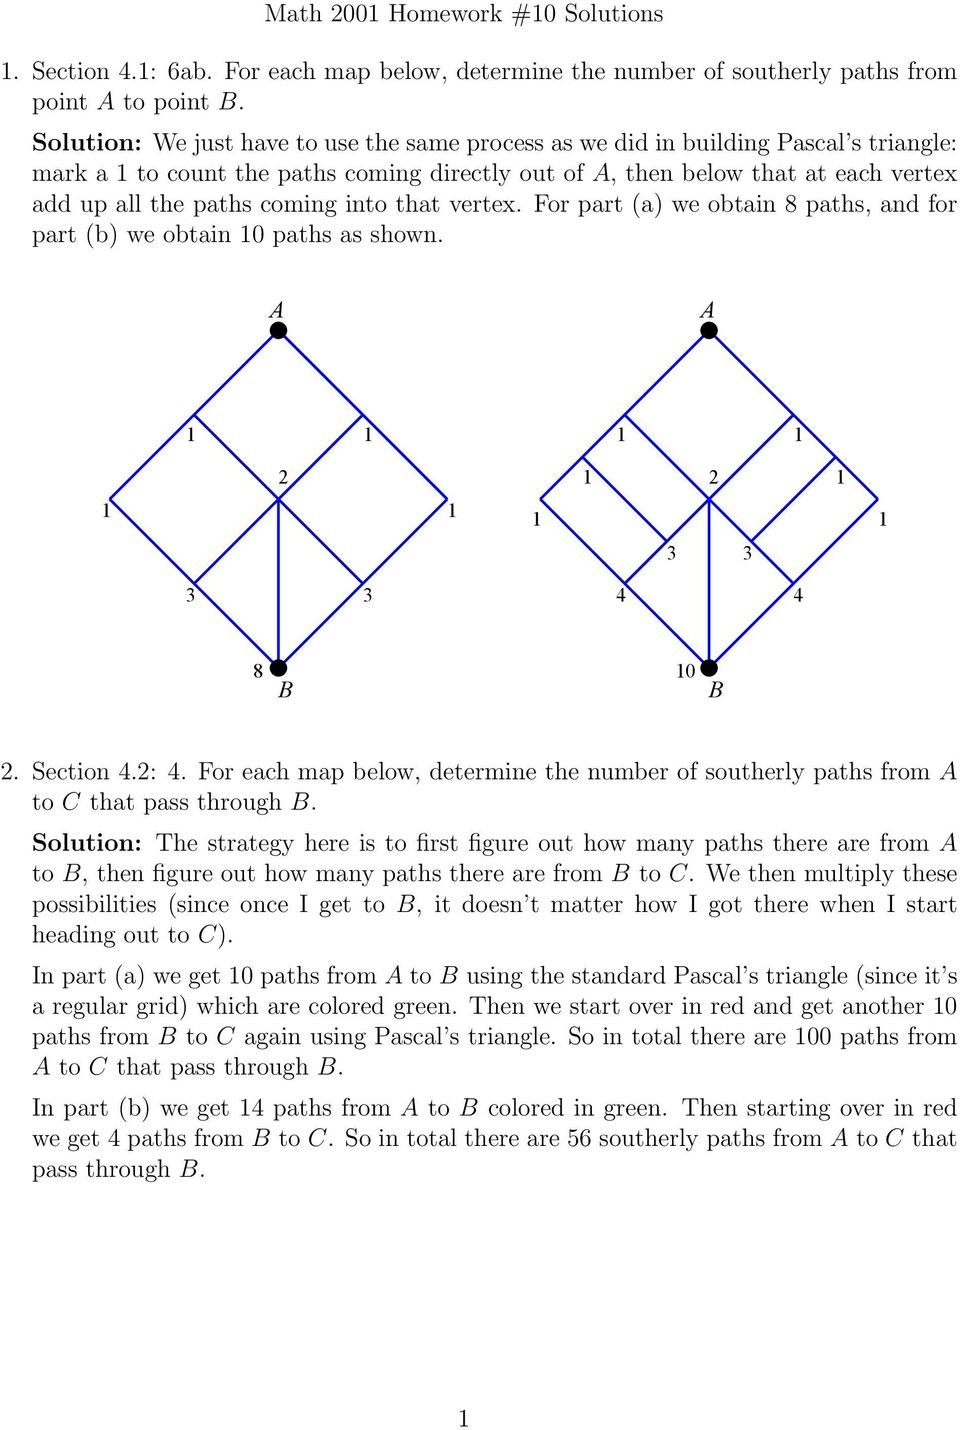 into that vertex. For part (a) we obtain 8 paths, and for part (b) we obtain 0 paths as shown. 8 0. Section.:. For each map below, determine the number of southerly paths from to that pass through.